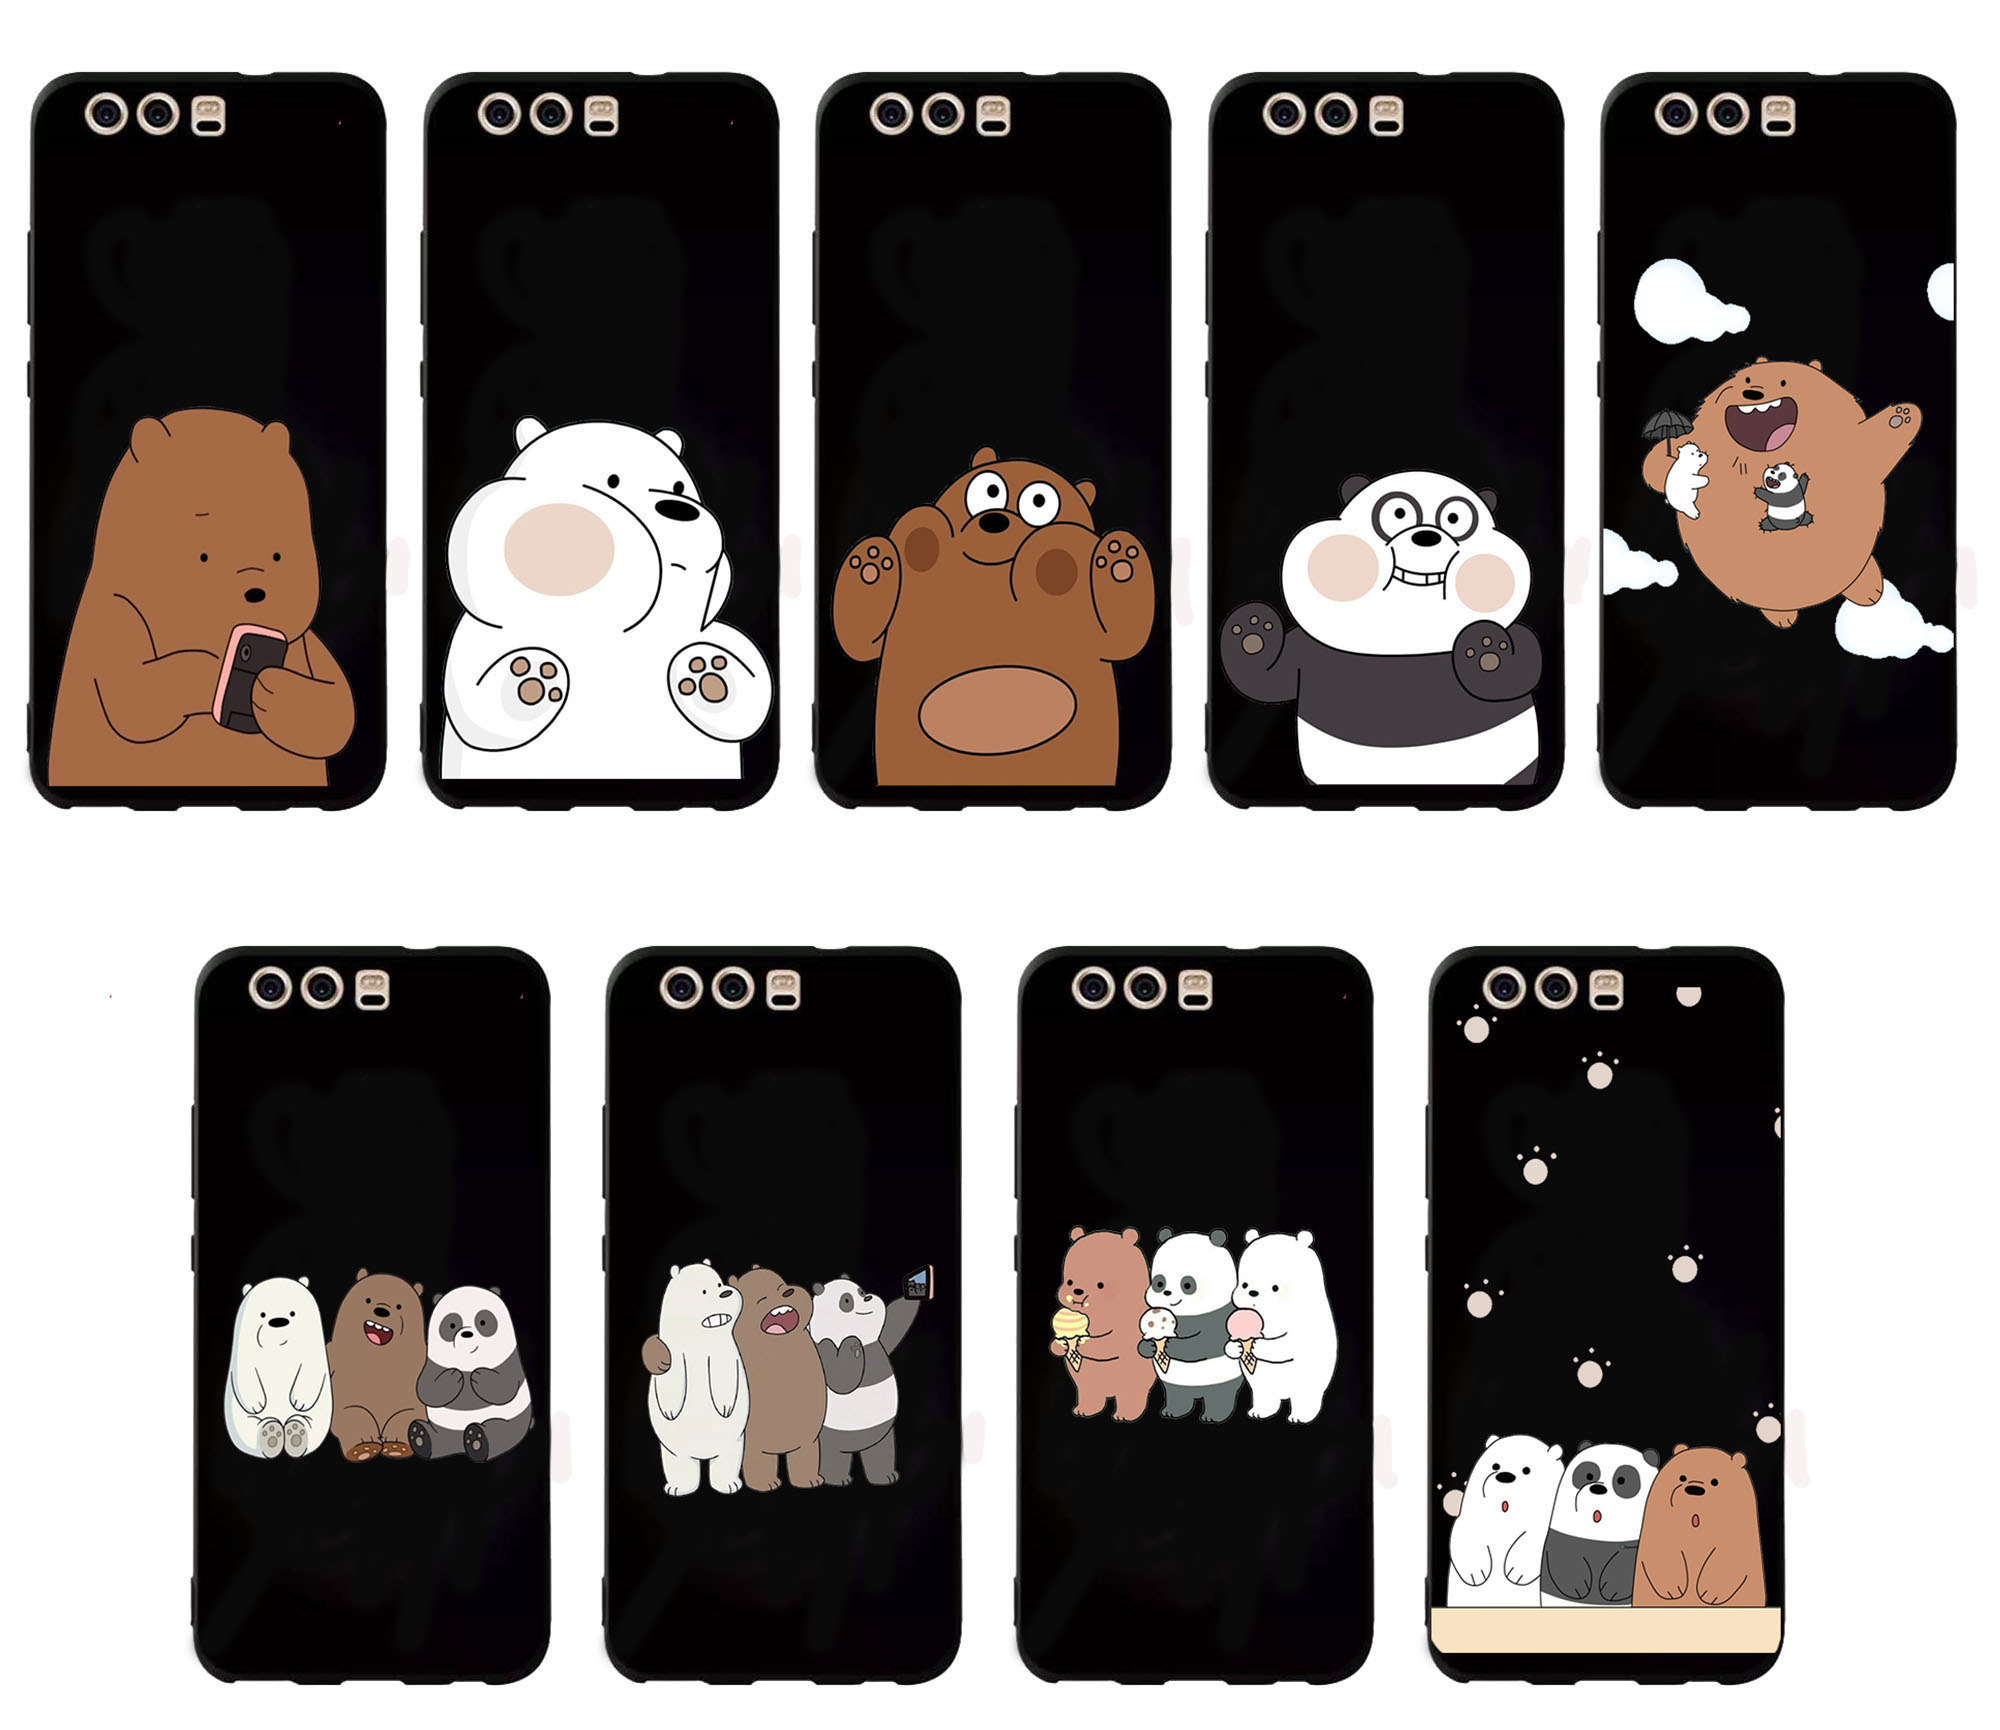 Cute Cartoon Bear Silicone Back Cover For <font><b>Huawei</b></font> P9 P10 Plus <font><b>P20</b></font> Lite <font><b>Pro</b></font> P <font><b>SmartPhone</b></font> Case For <font><b>Huawei</b></font> P8 P9 P10 <font><b>P20</b></font> Lite 2017 image